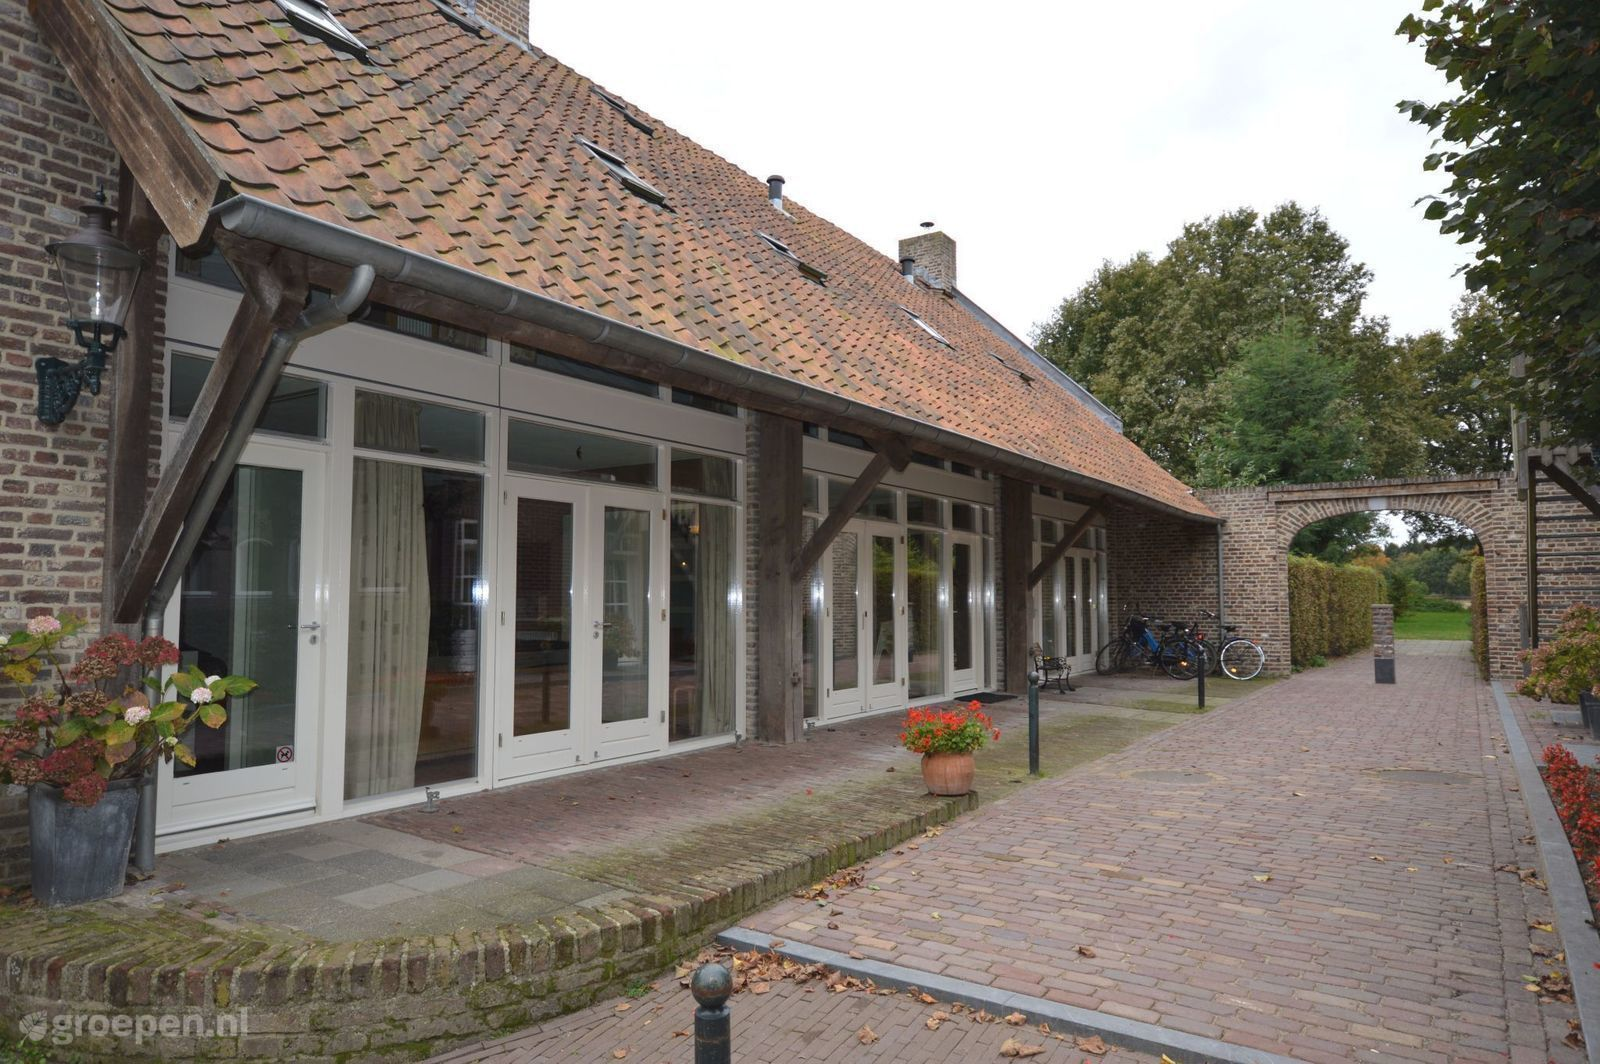 Zwembad Binnenhof Paasloo Group Accommodation In Maasbree Limburg 20 Guests Groepen Co Uk